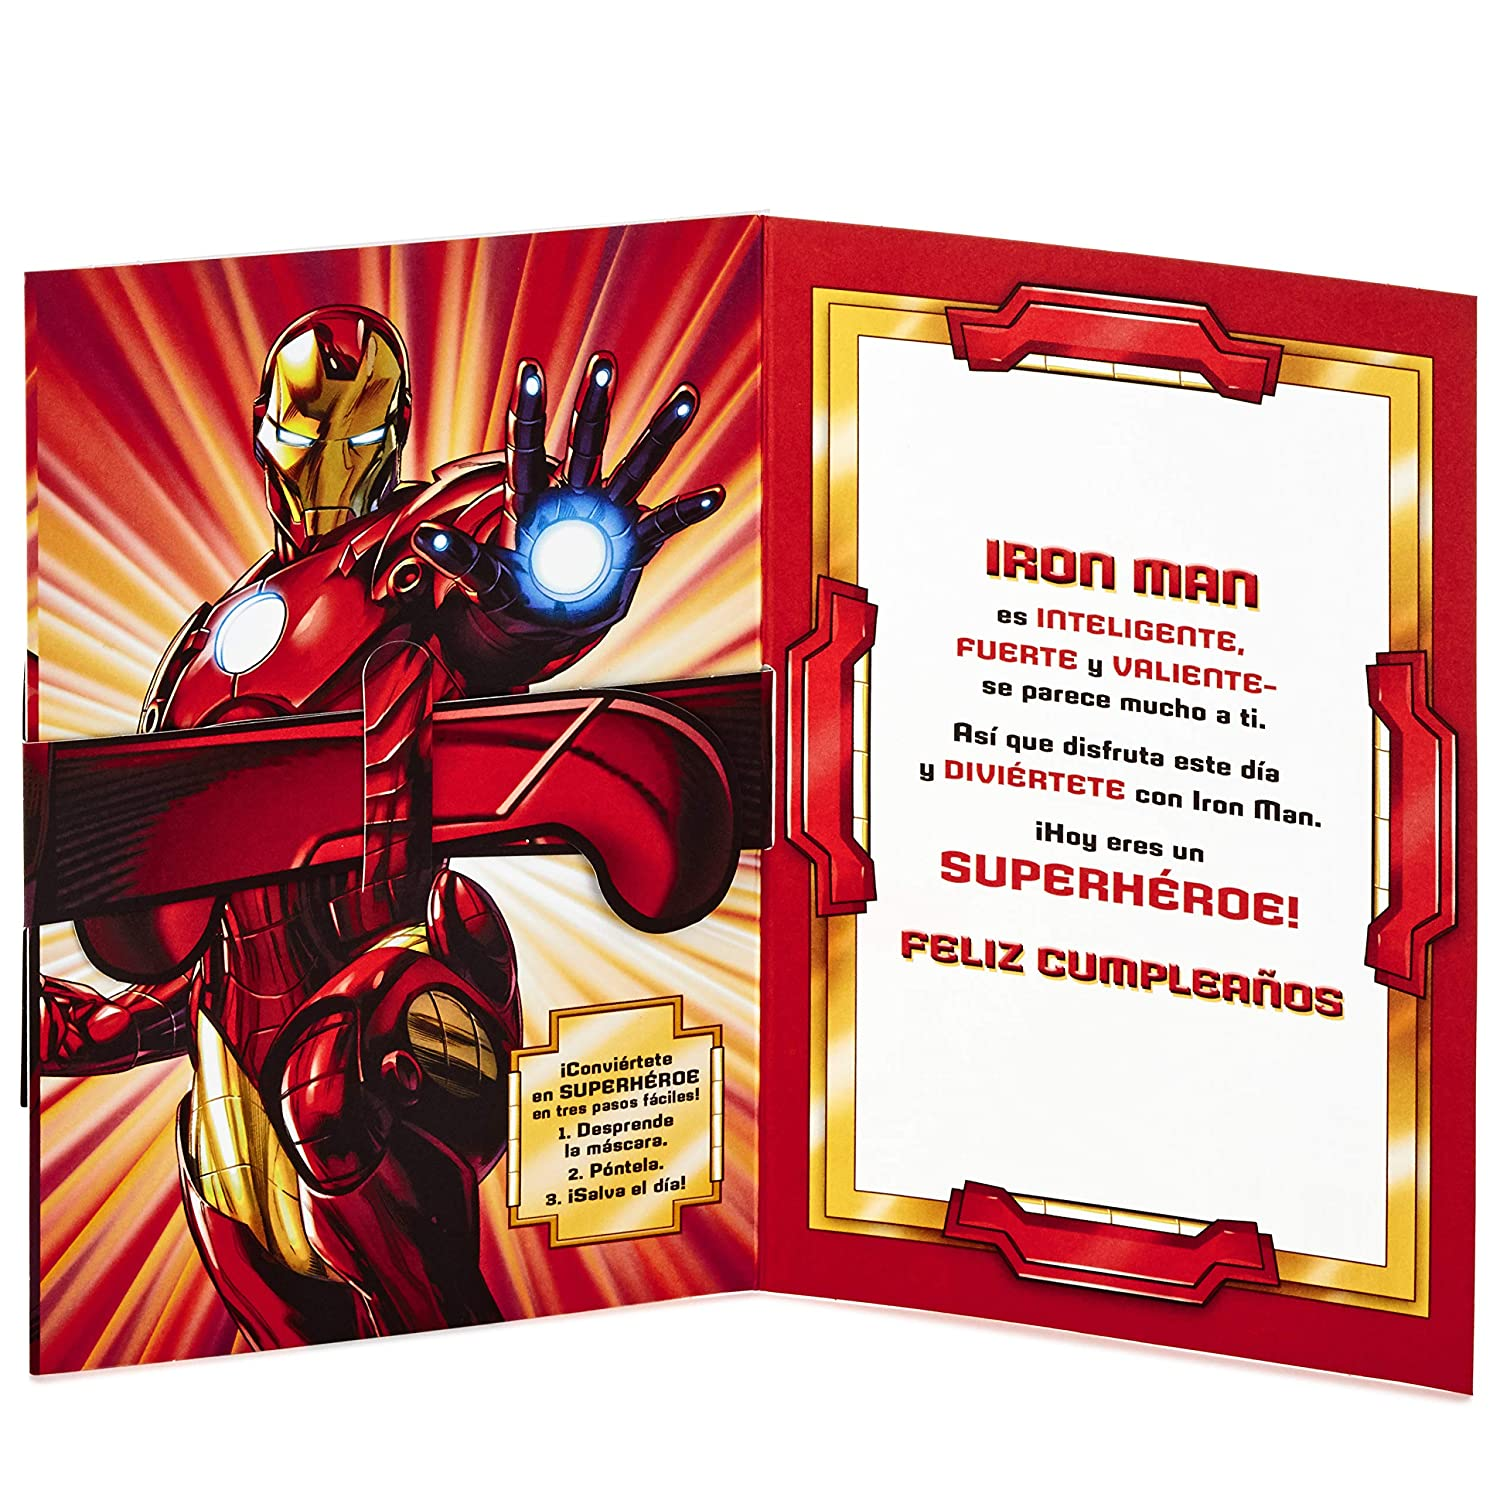 Amazon.com: Hallmark Vida Marvel Iron Man Spanish Birthday Card for Kids with Removable Mask: Office Products